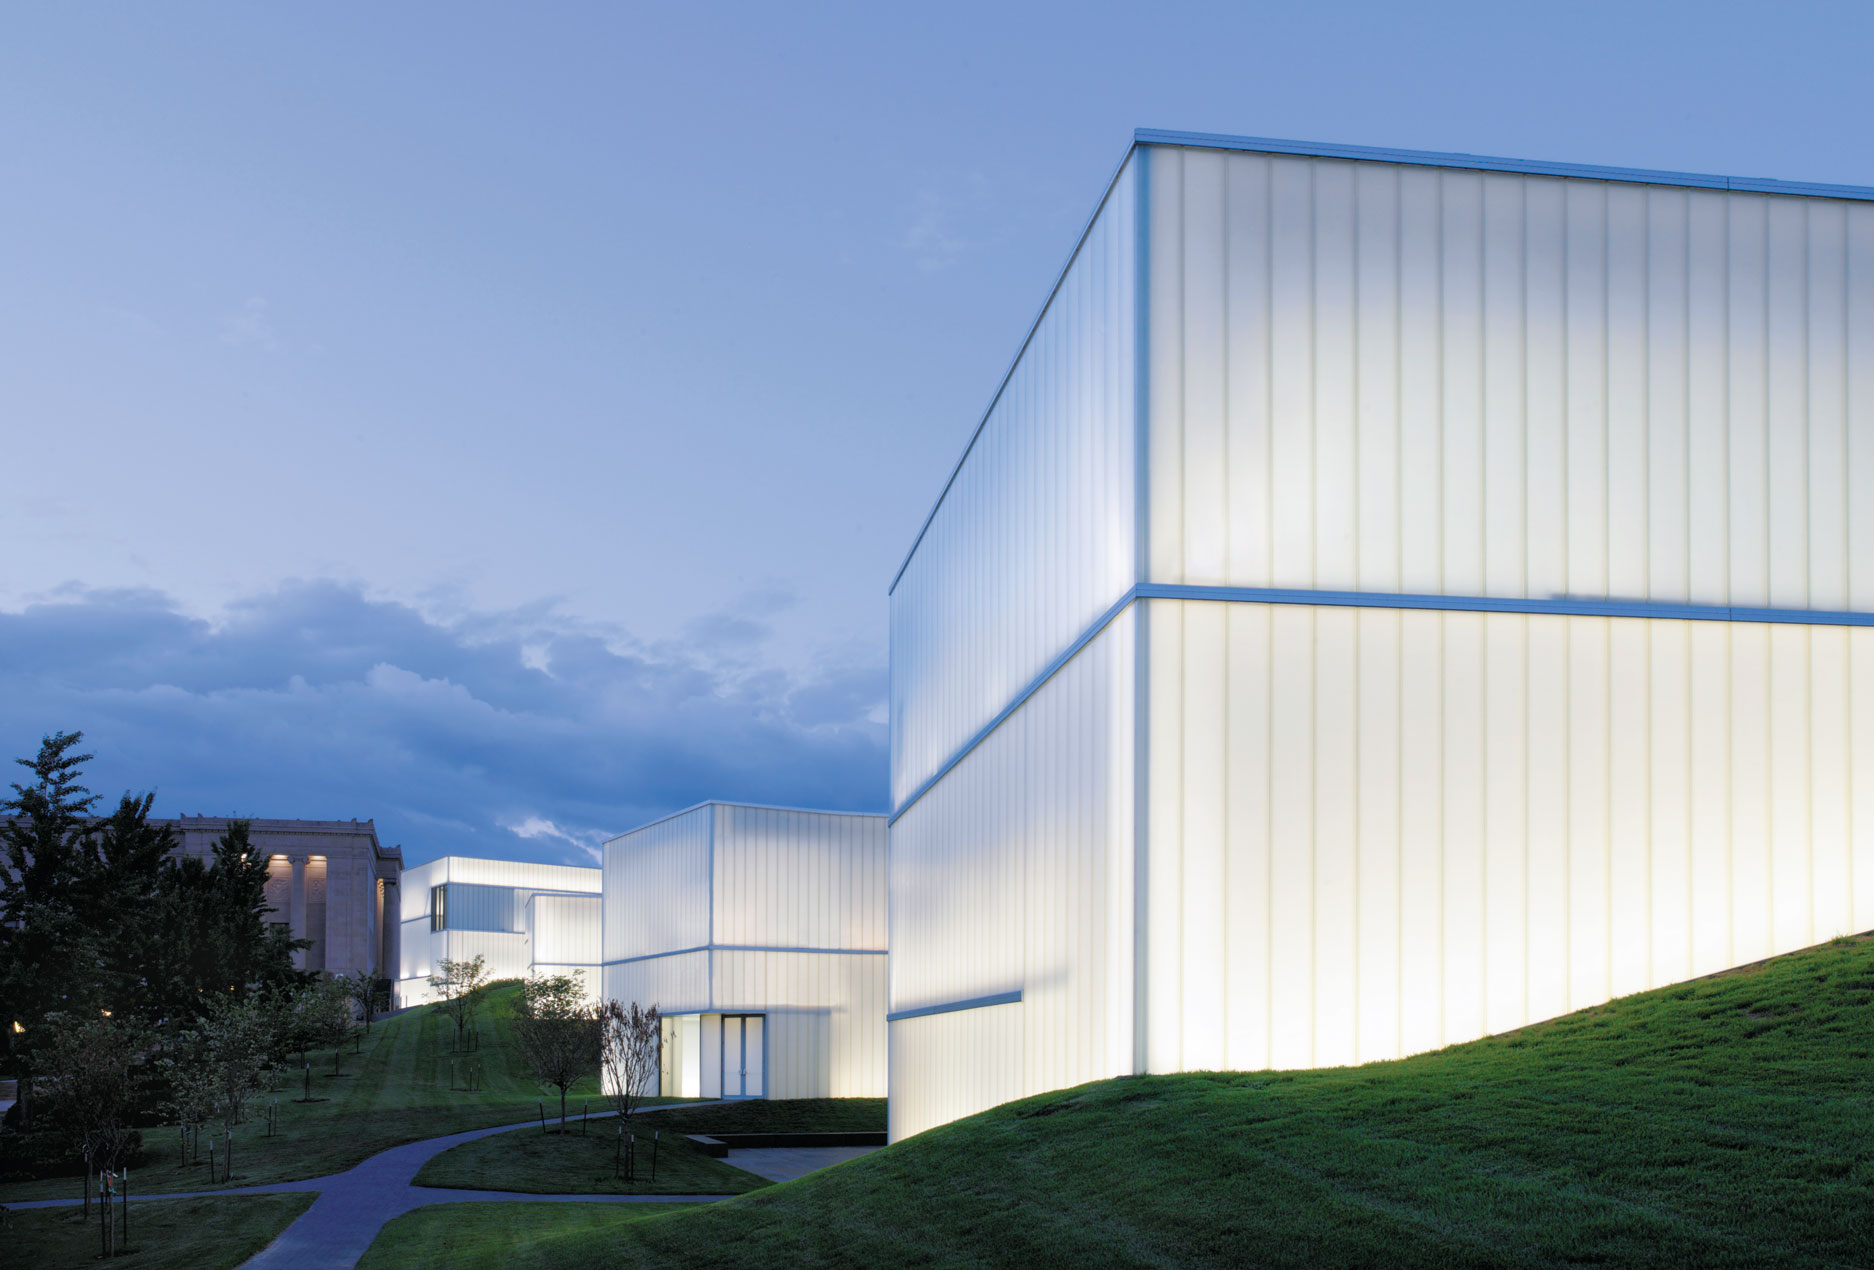 Steven Holl Architects To Design Arts Buildings 2 4 2008